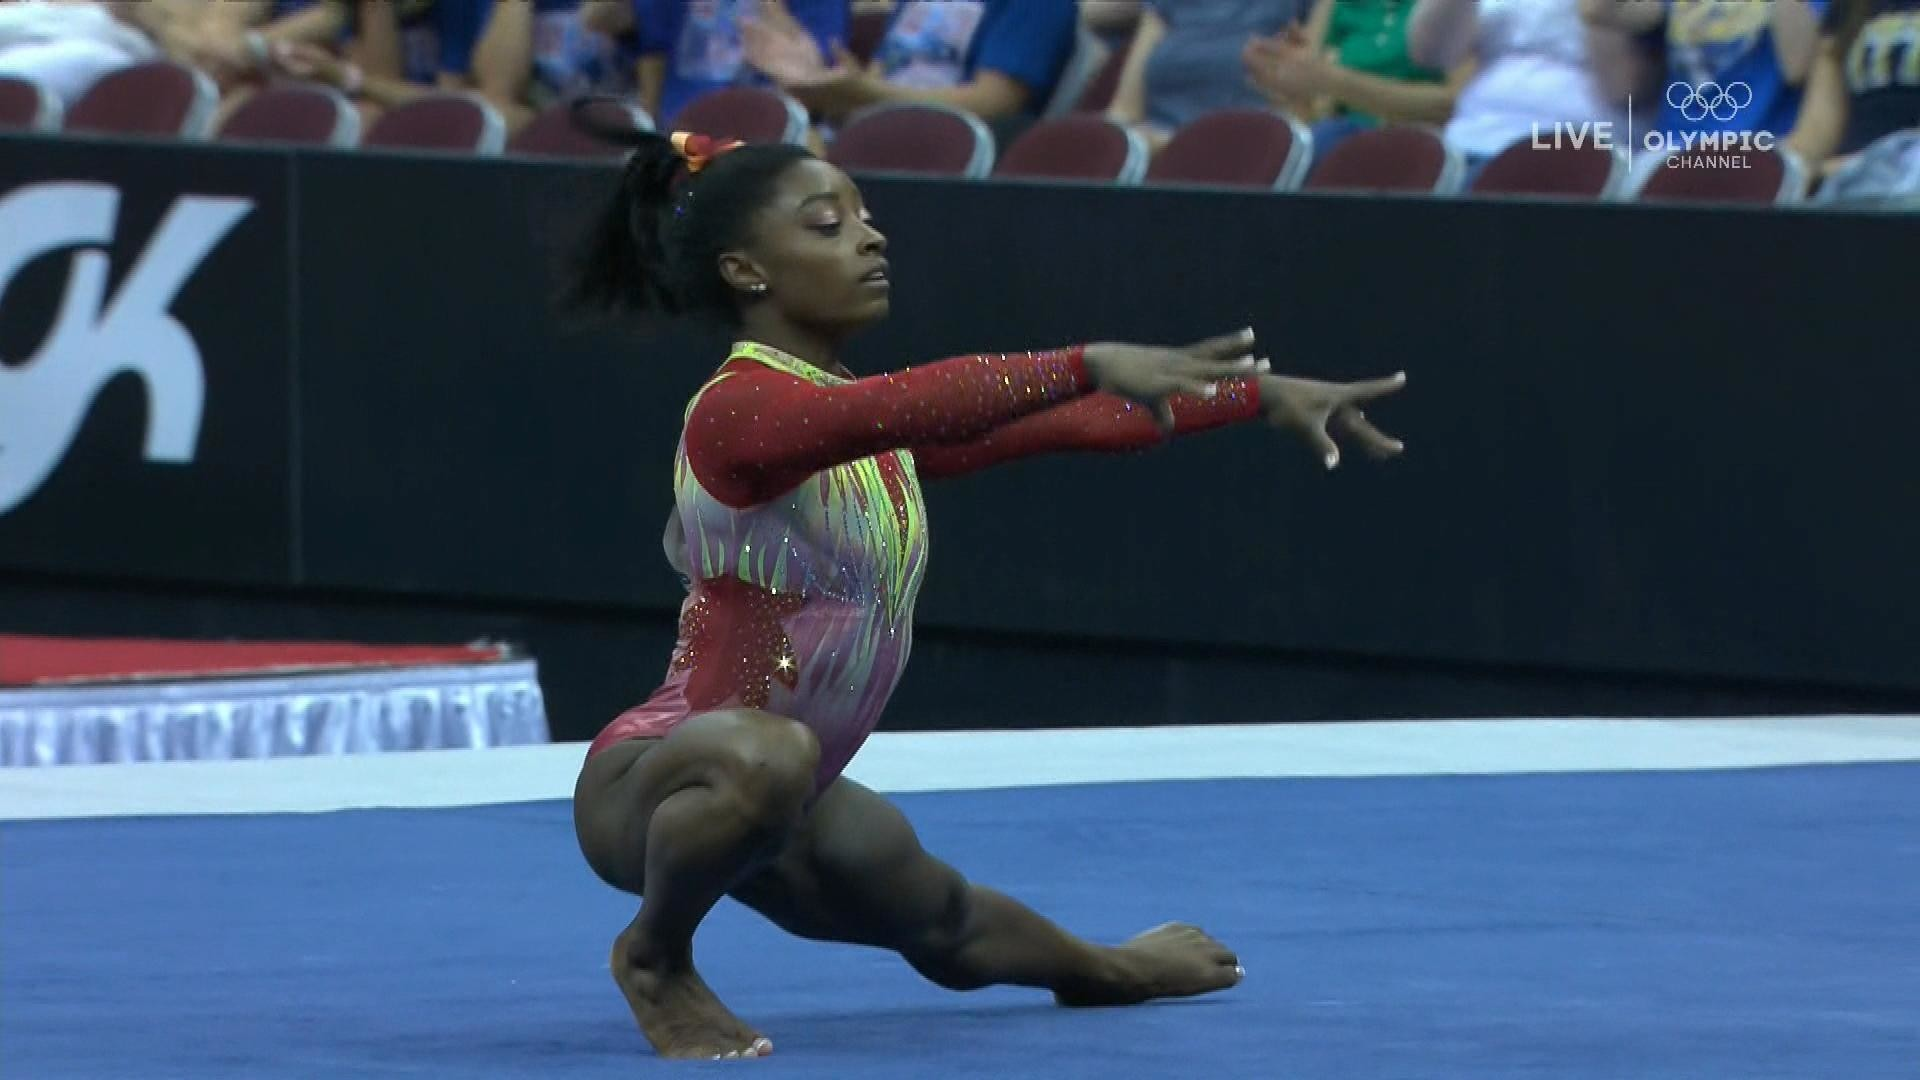 Simone Biles delivers big performance